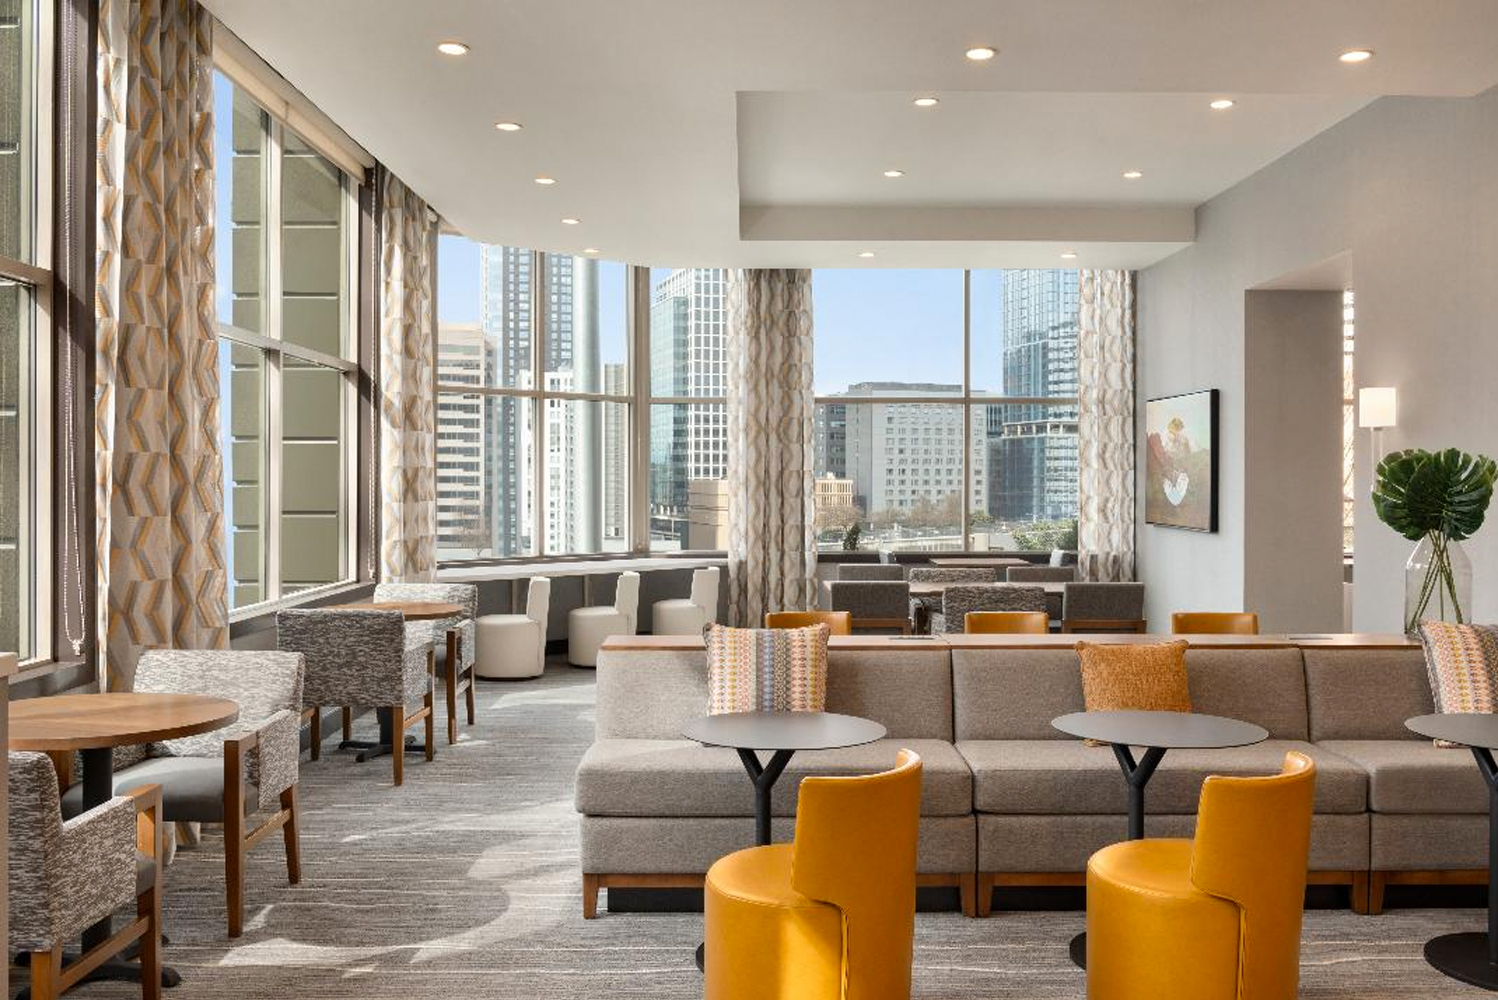 The new look of the Homewood Suites Convention Center Pike Street was designed by J. Kattman Associates.